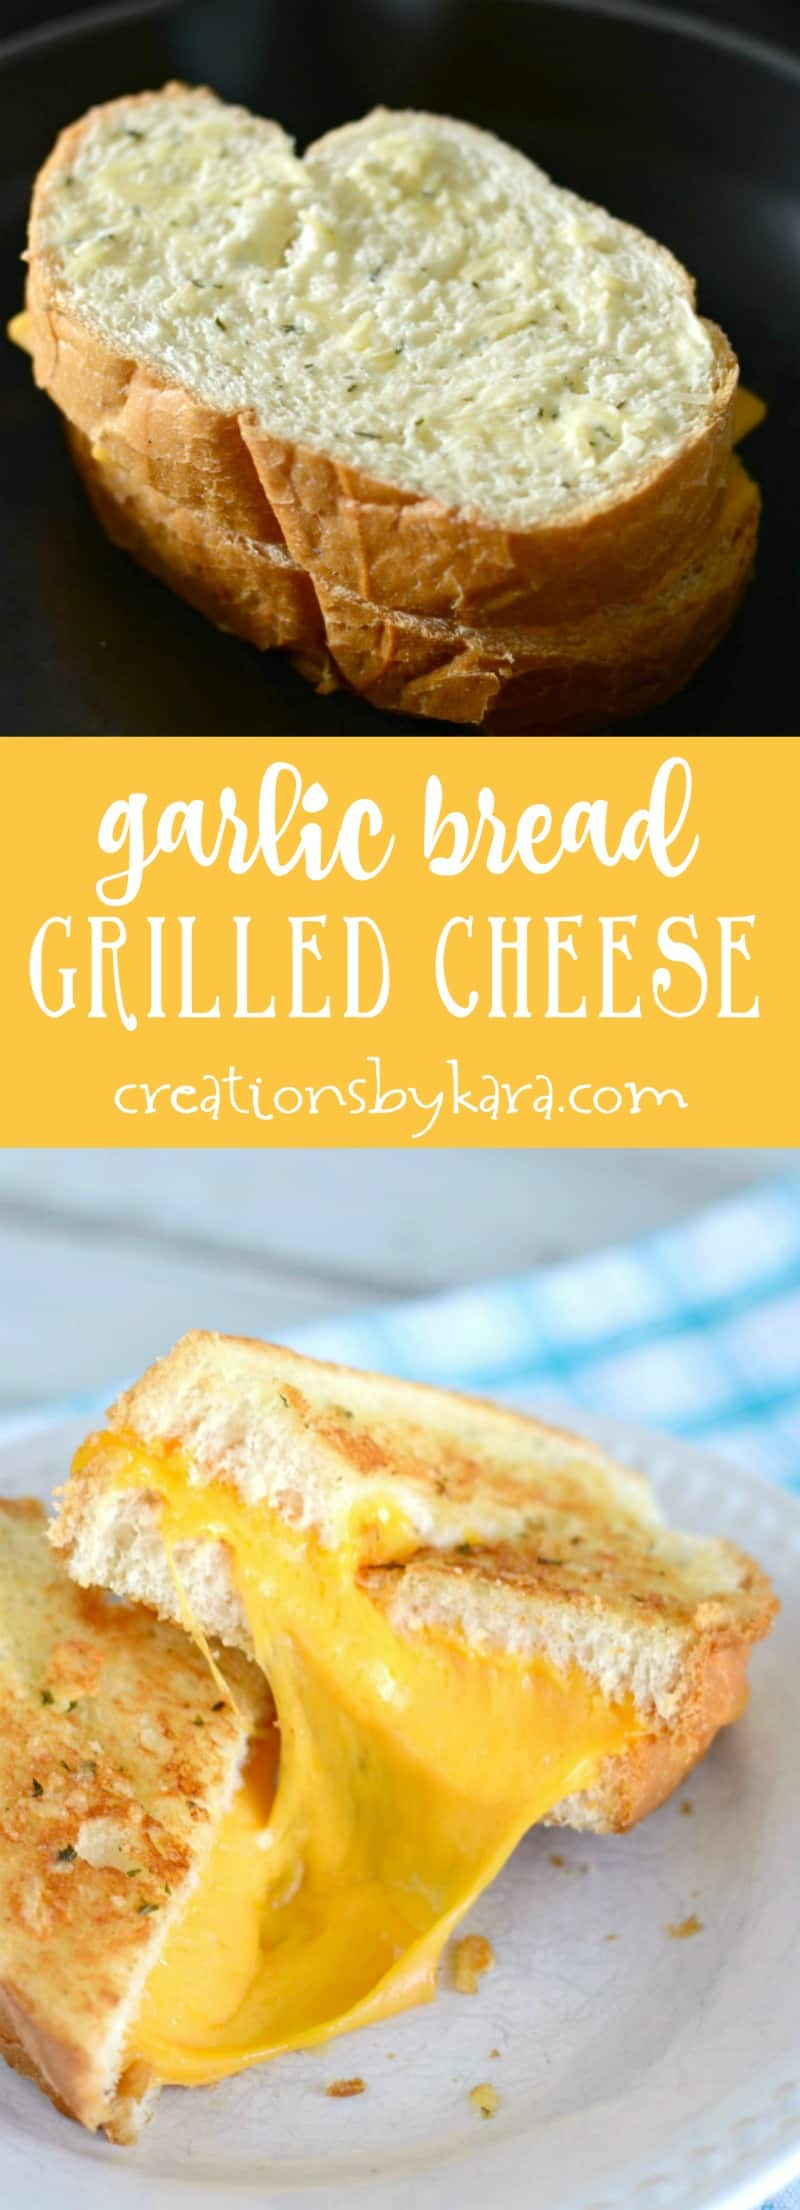 Give these garlic bread grilled cheese sandwiches a try. They are packed with flavor! A tasty update on a classic sandwich!